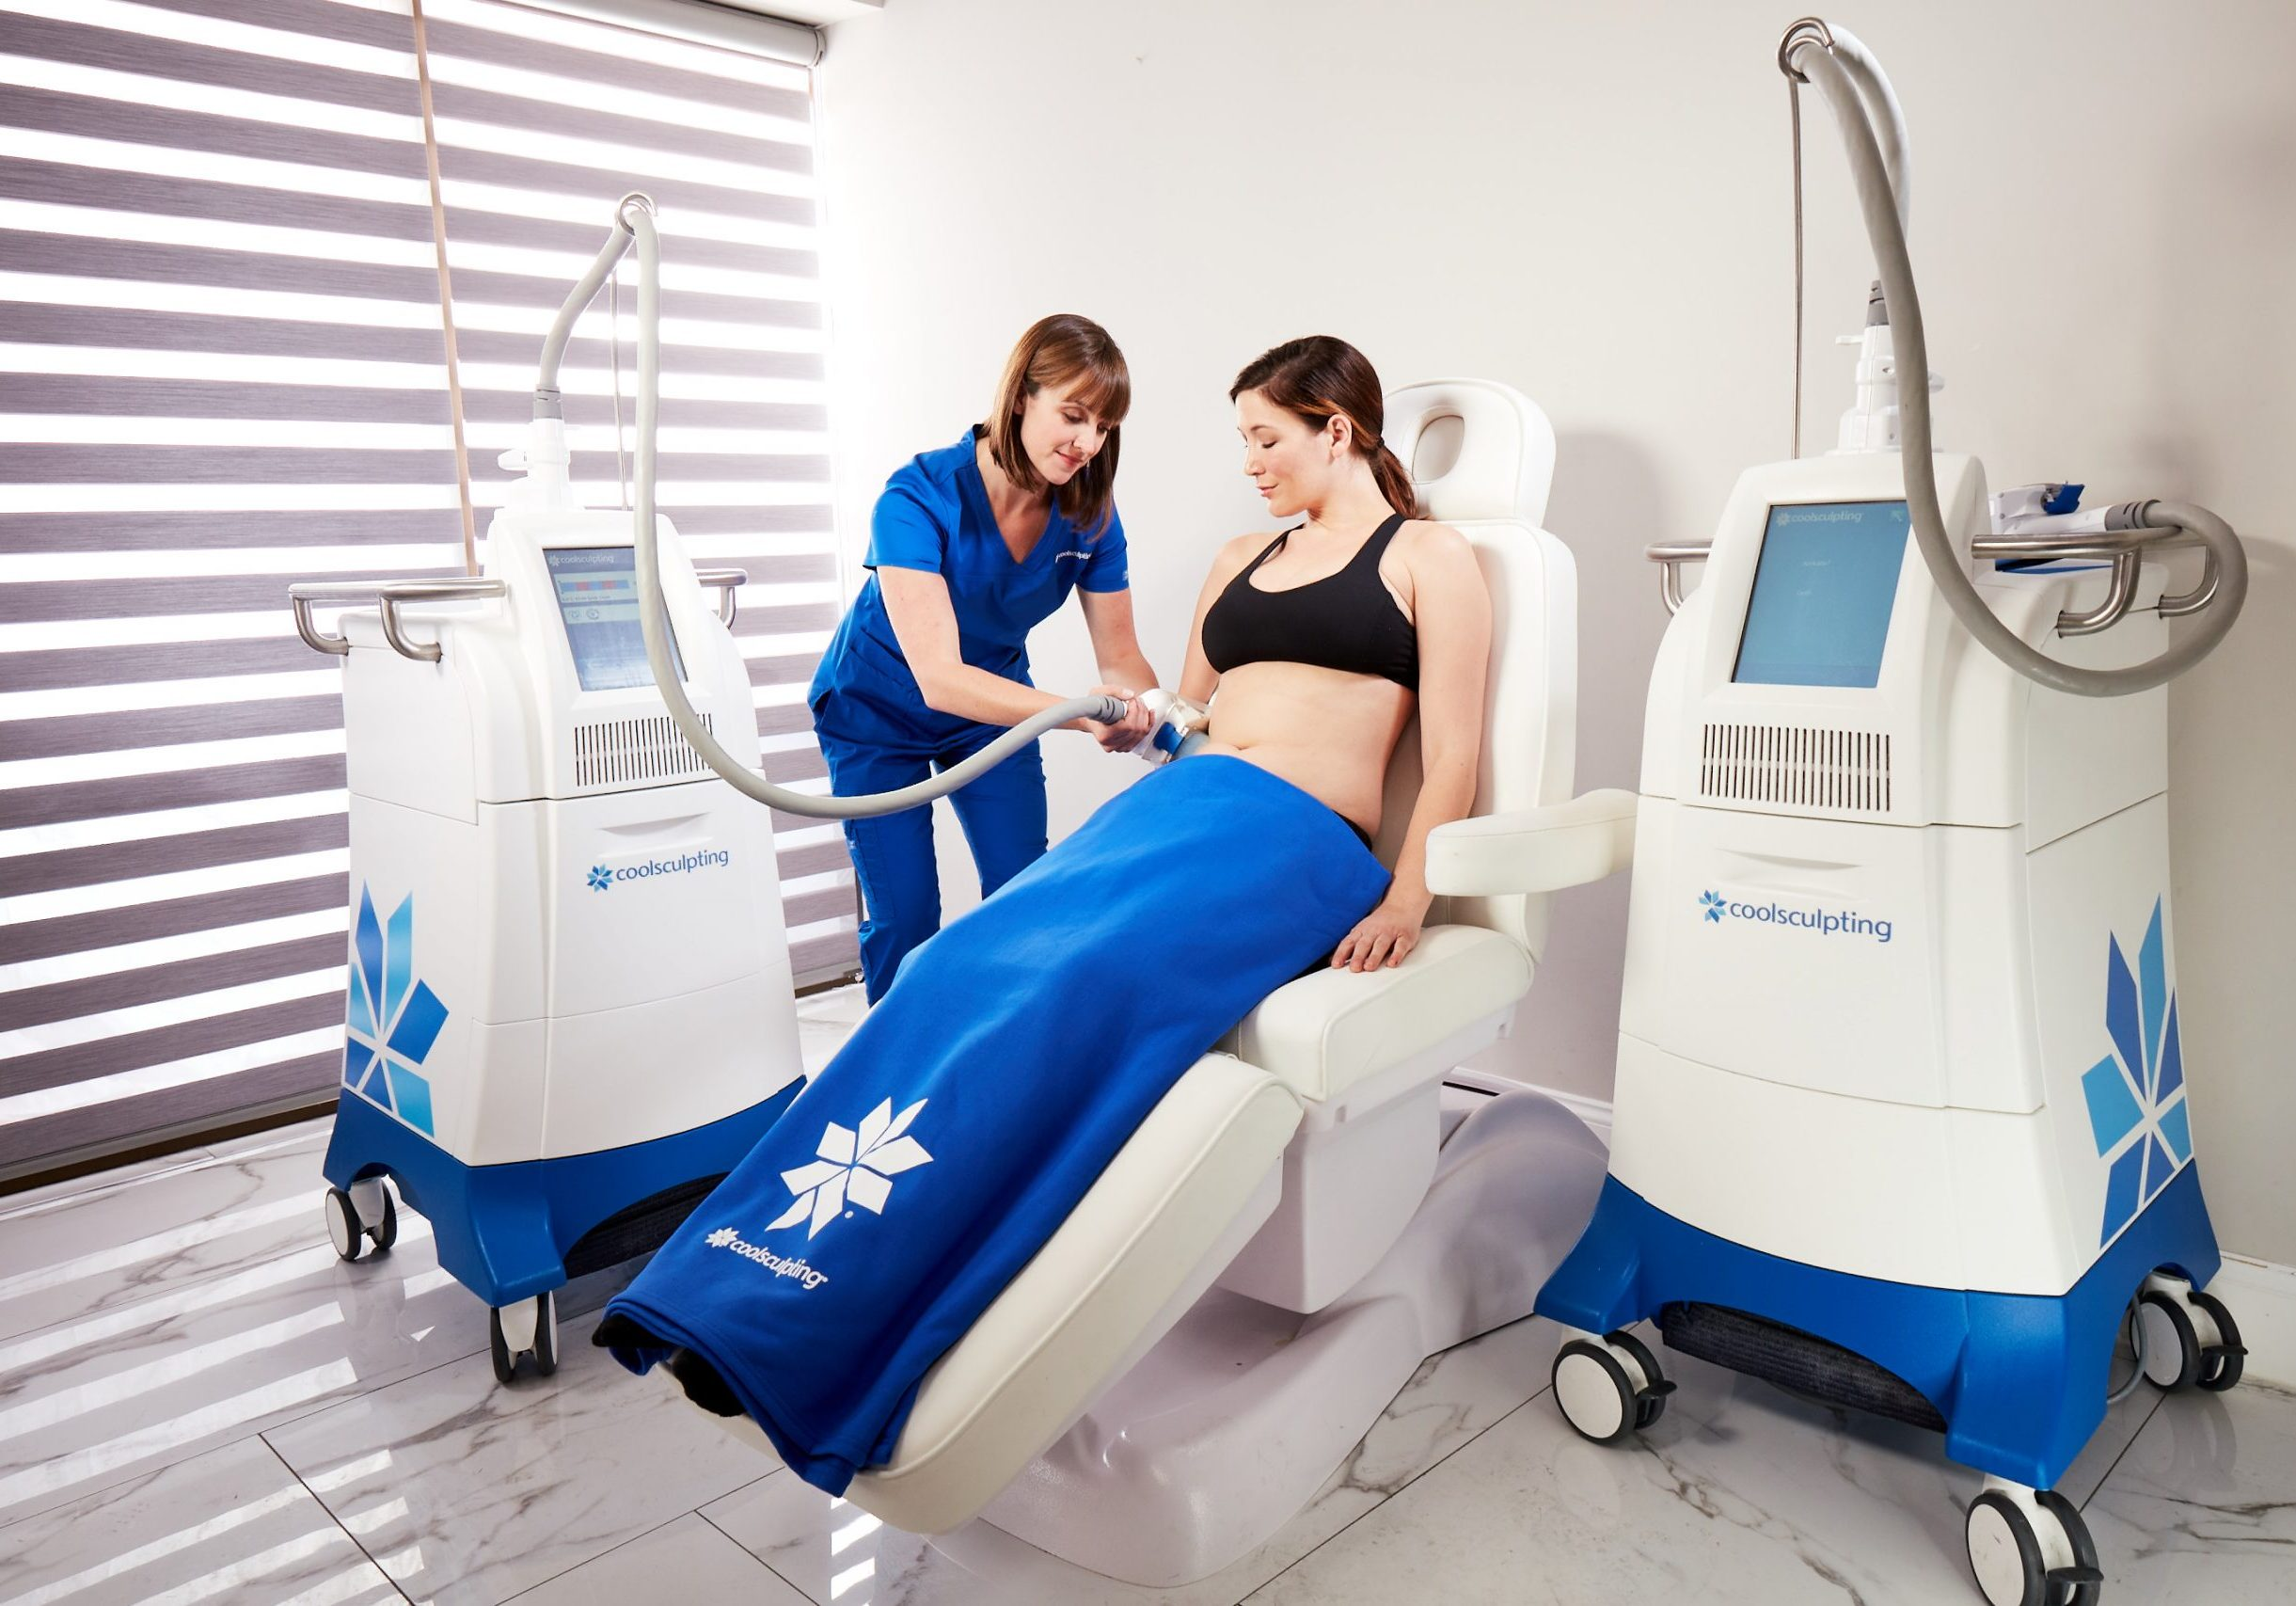 coolsculpting before and after whitteir med spa